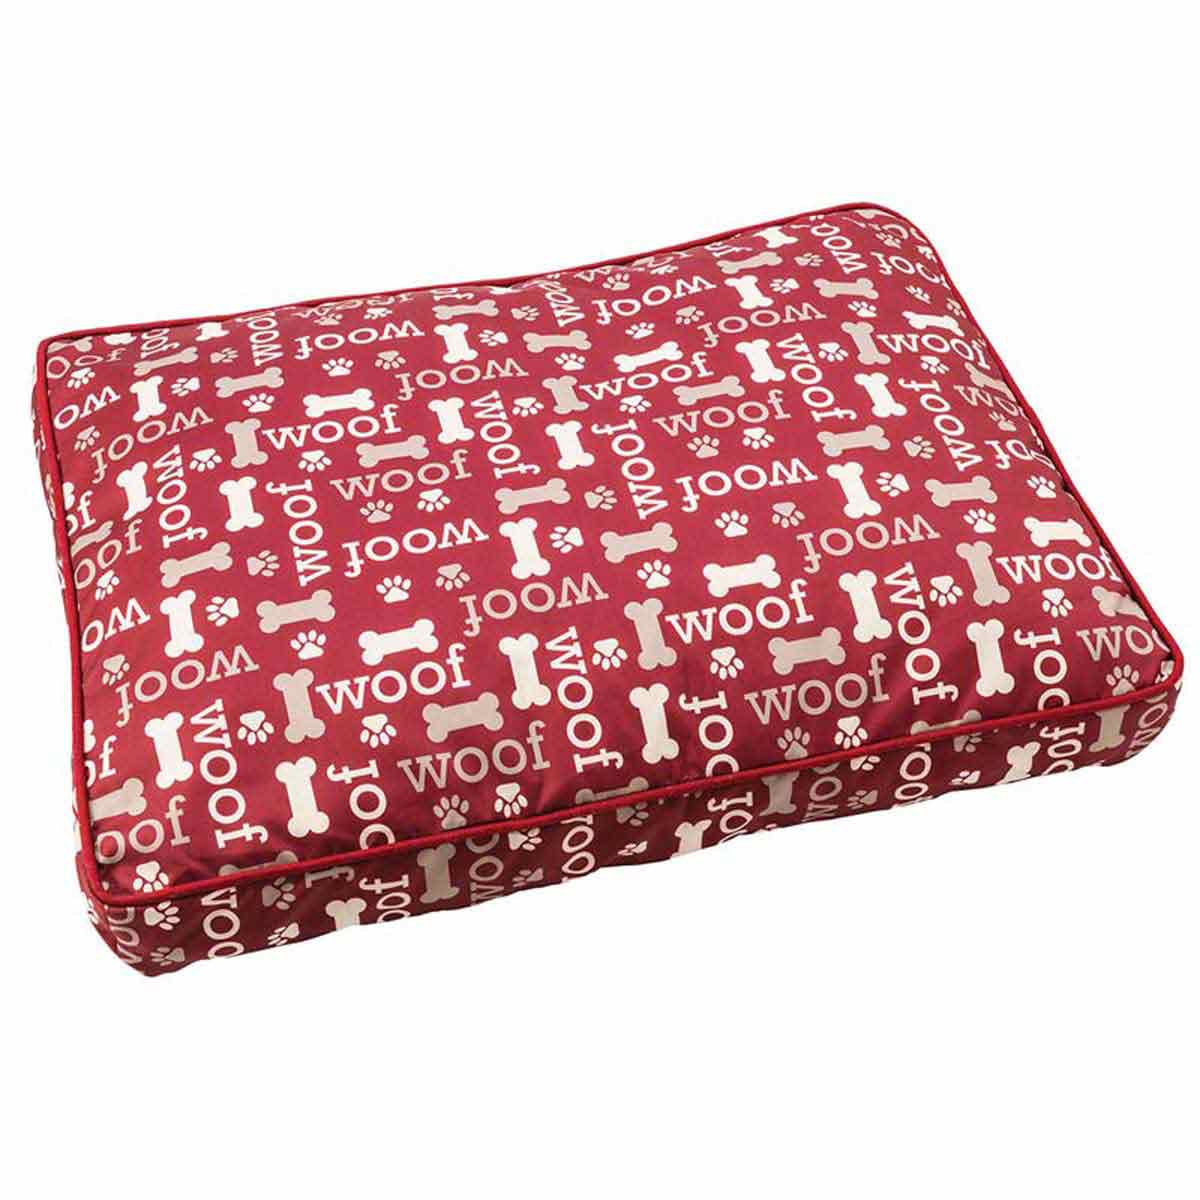 Burgundy Woof Design Sleep Zone Pillow Pet Bed - 29 inches